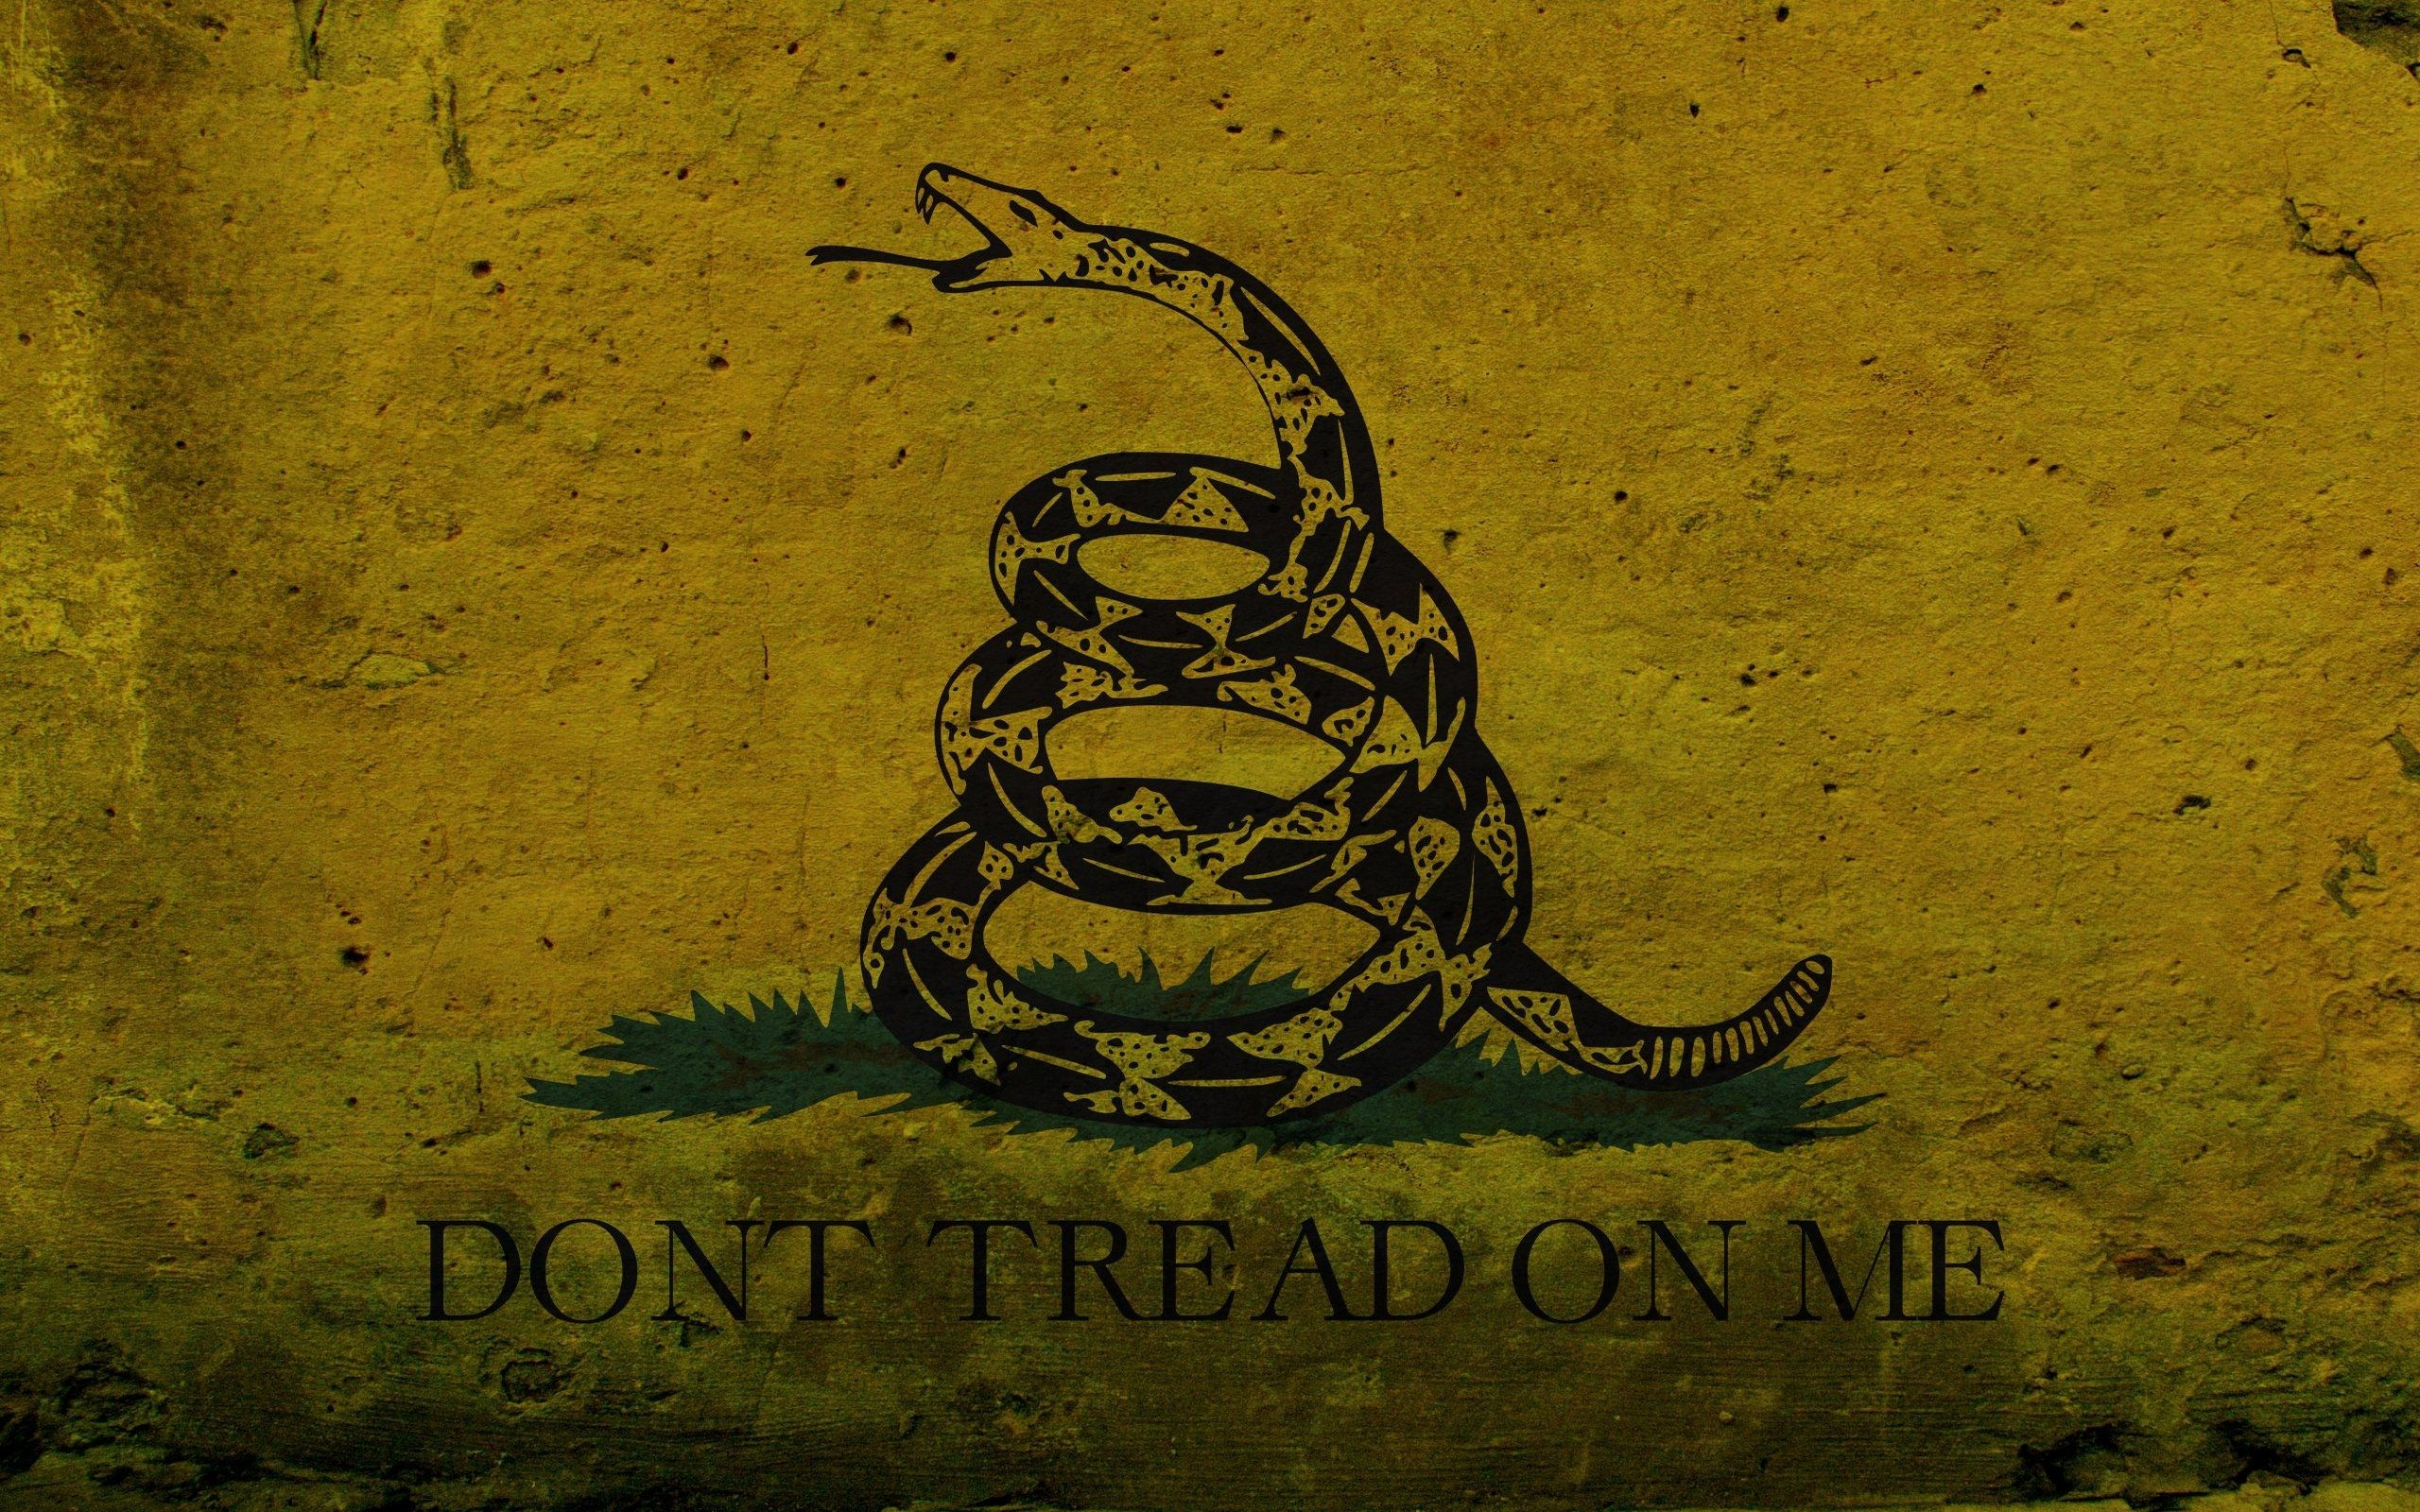 11 Unique Dont Tread On Me Iphone Wallpaper Save In Your Phone Now In 2020 Gadsden Flag American Flag Wallpaper Dont Tread On Me